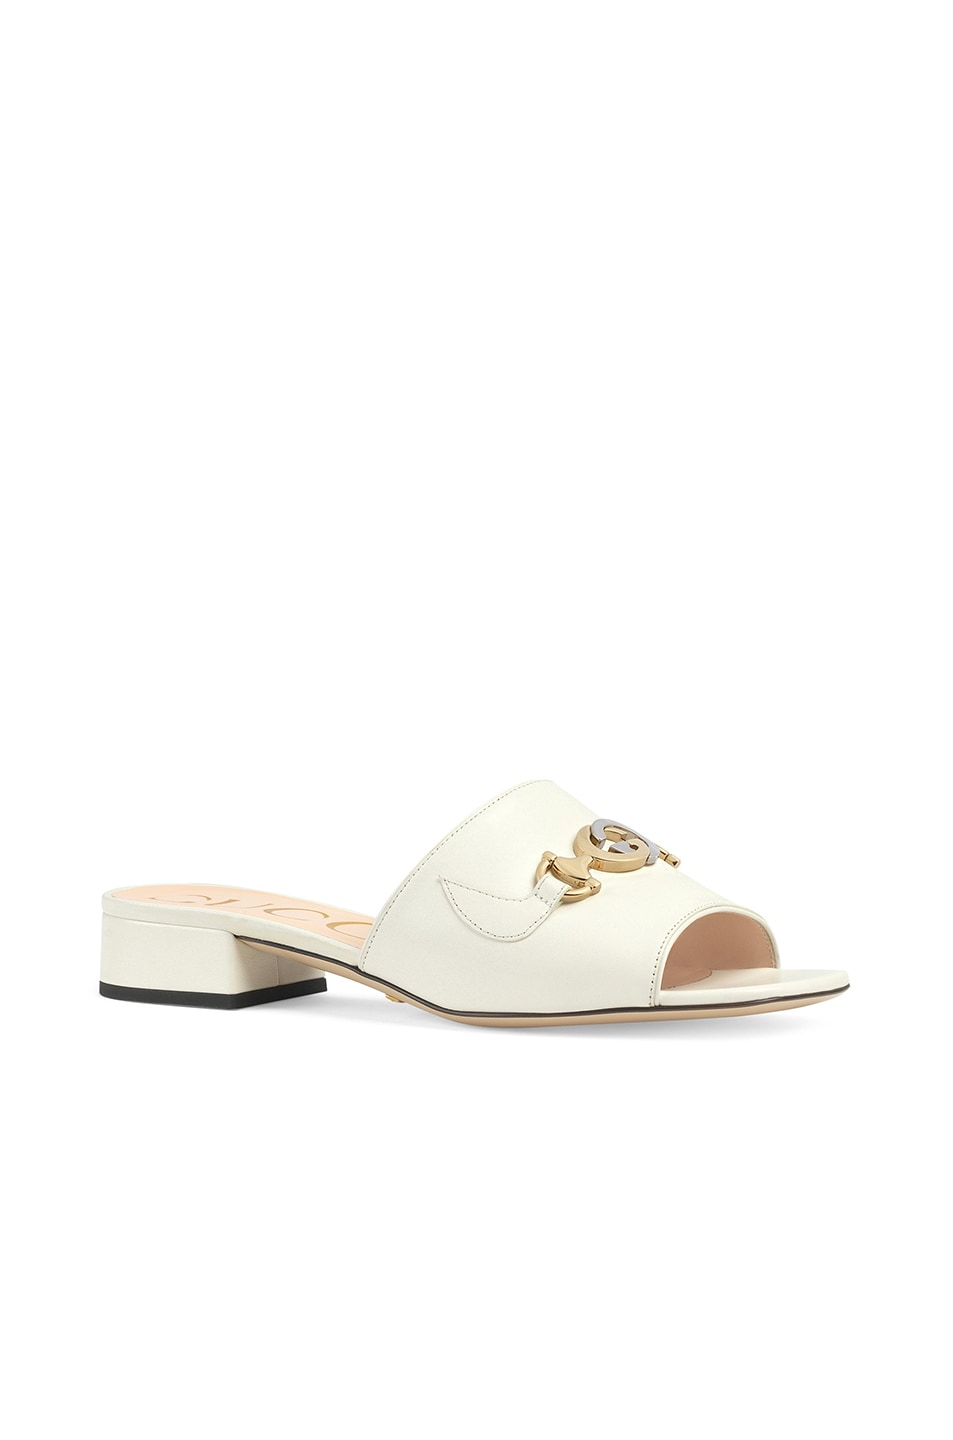 Image 2 of Gucci Leather Sandals in Dusty White